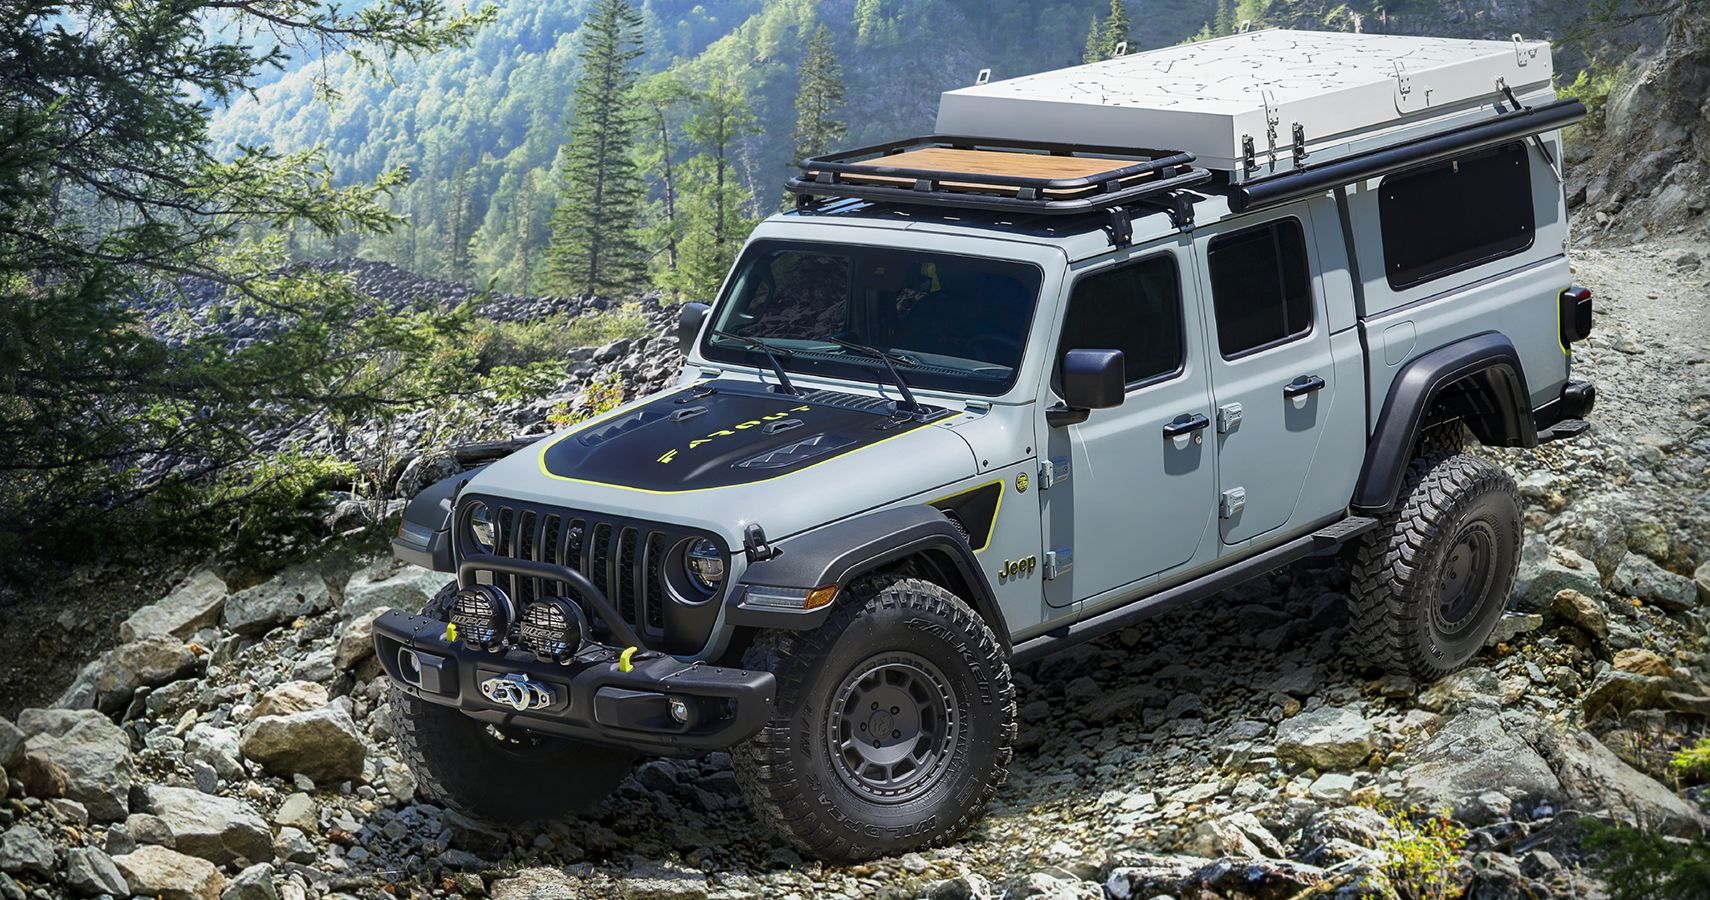 Jeep Gladiator Farout Concept Explores Overlanding Market